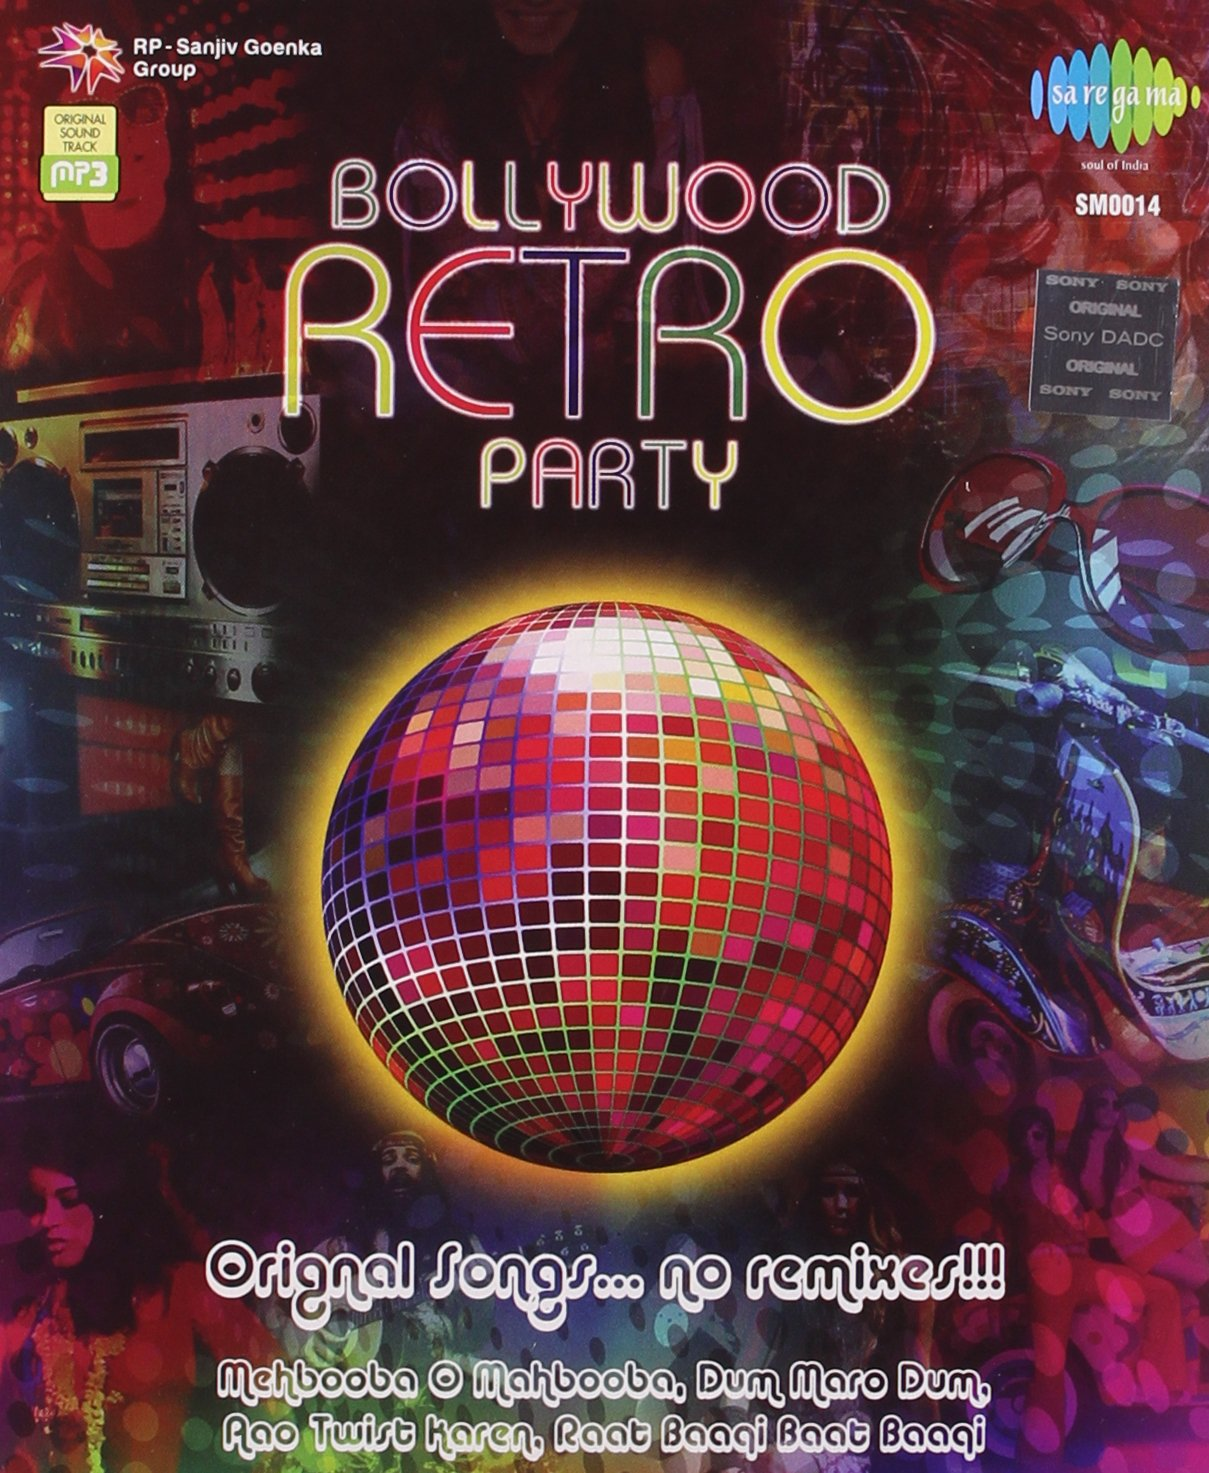 Amazon.in: Buy Bollywood Retro Party: Original Songs No Remixes DVD ...